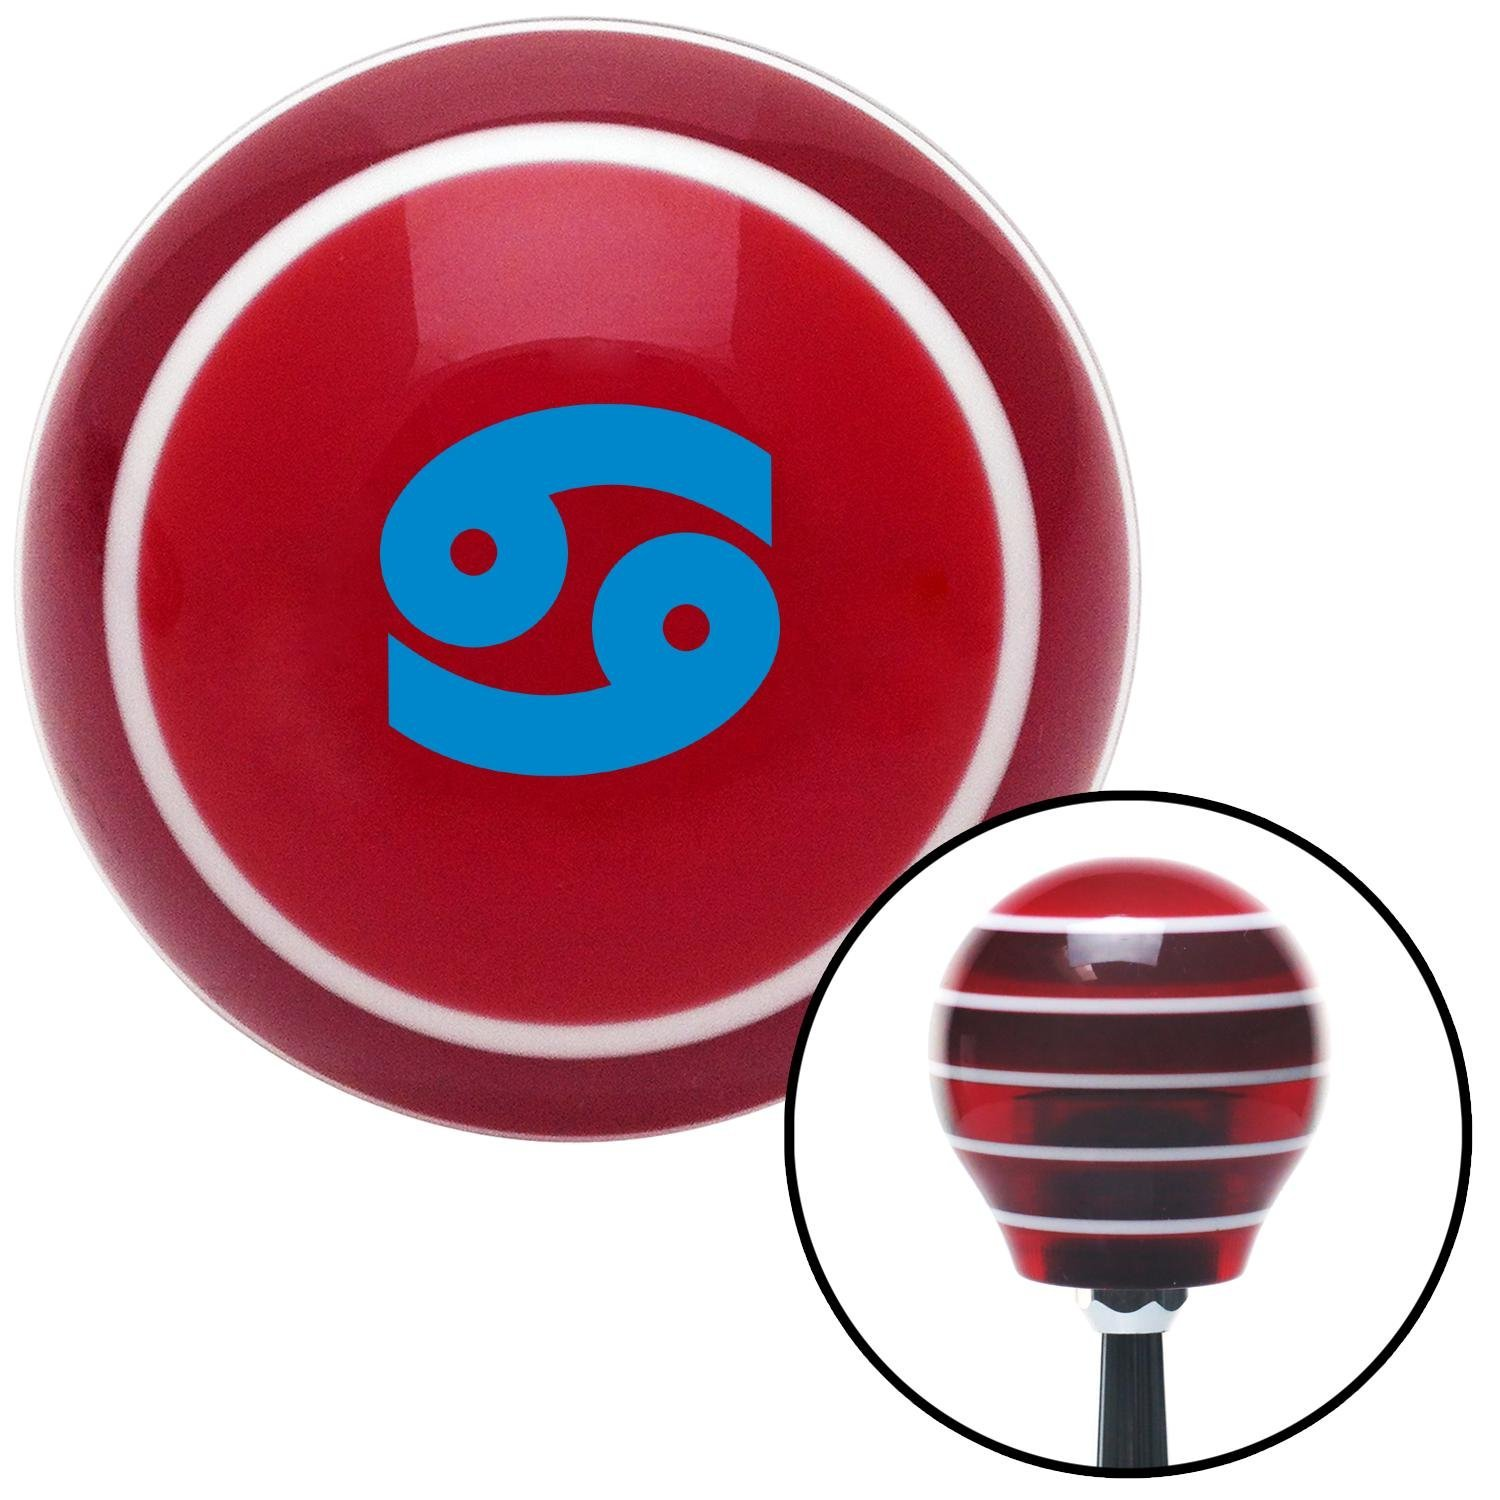 American Shifter 273982 Shift Knob Blue Cancer Red Stripe with M16 x 1.5 Insert